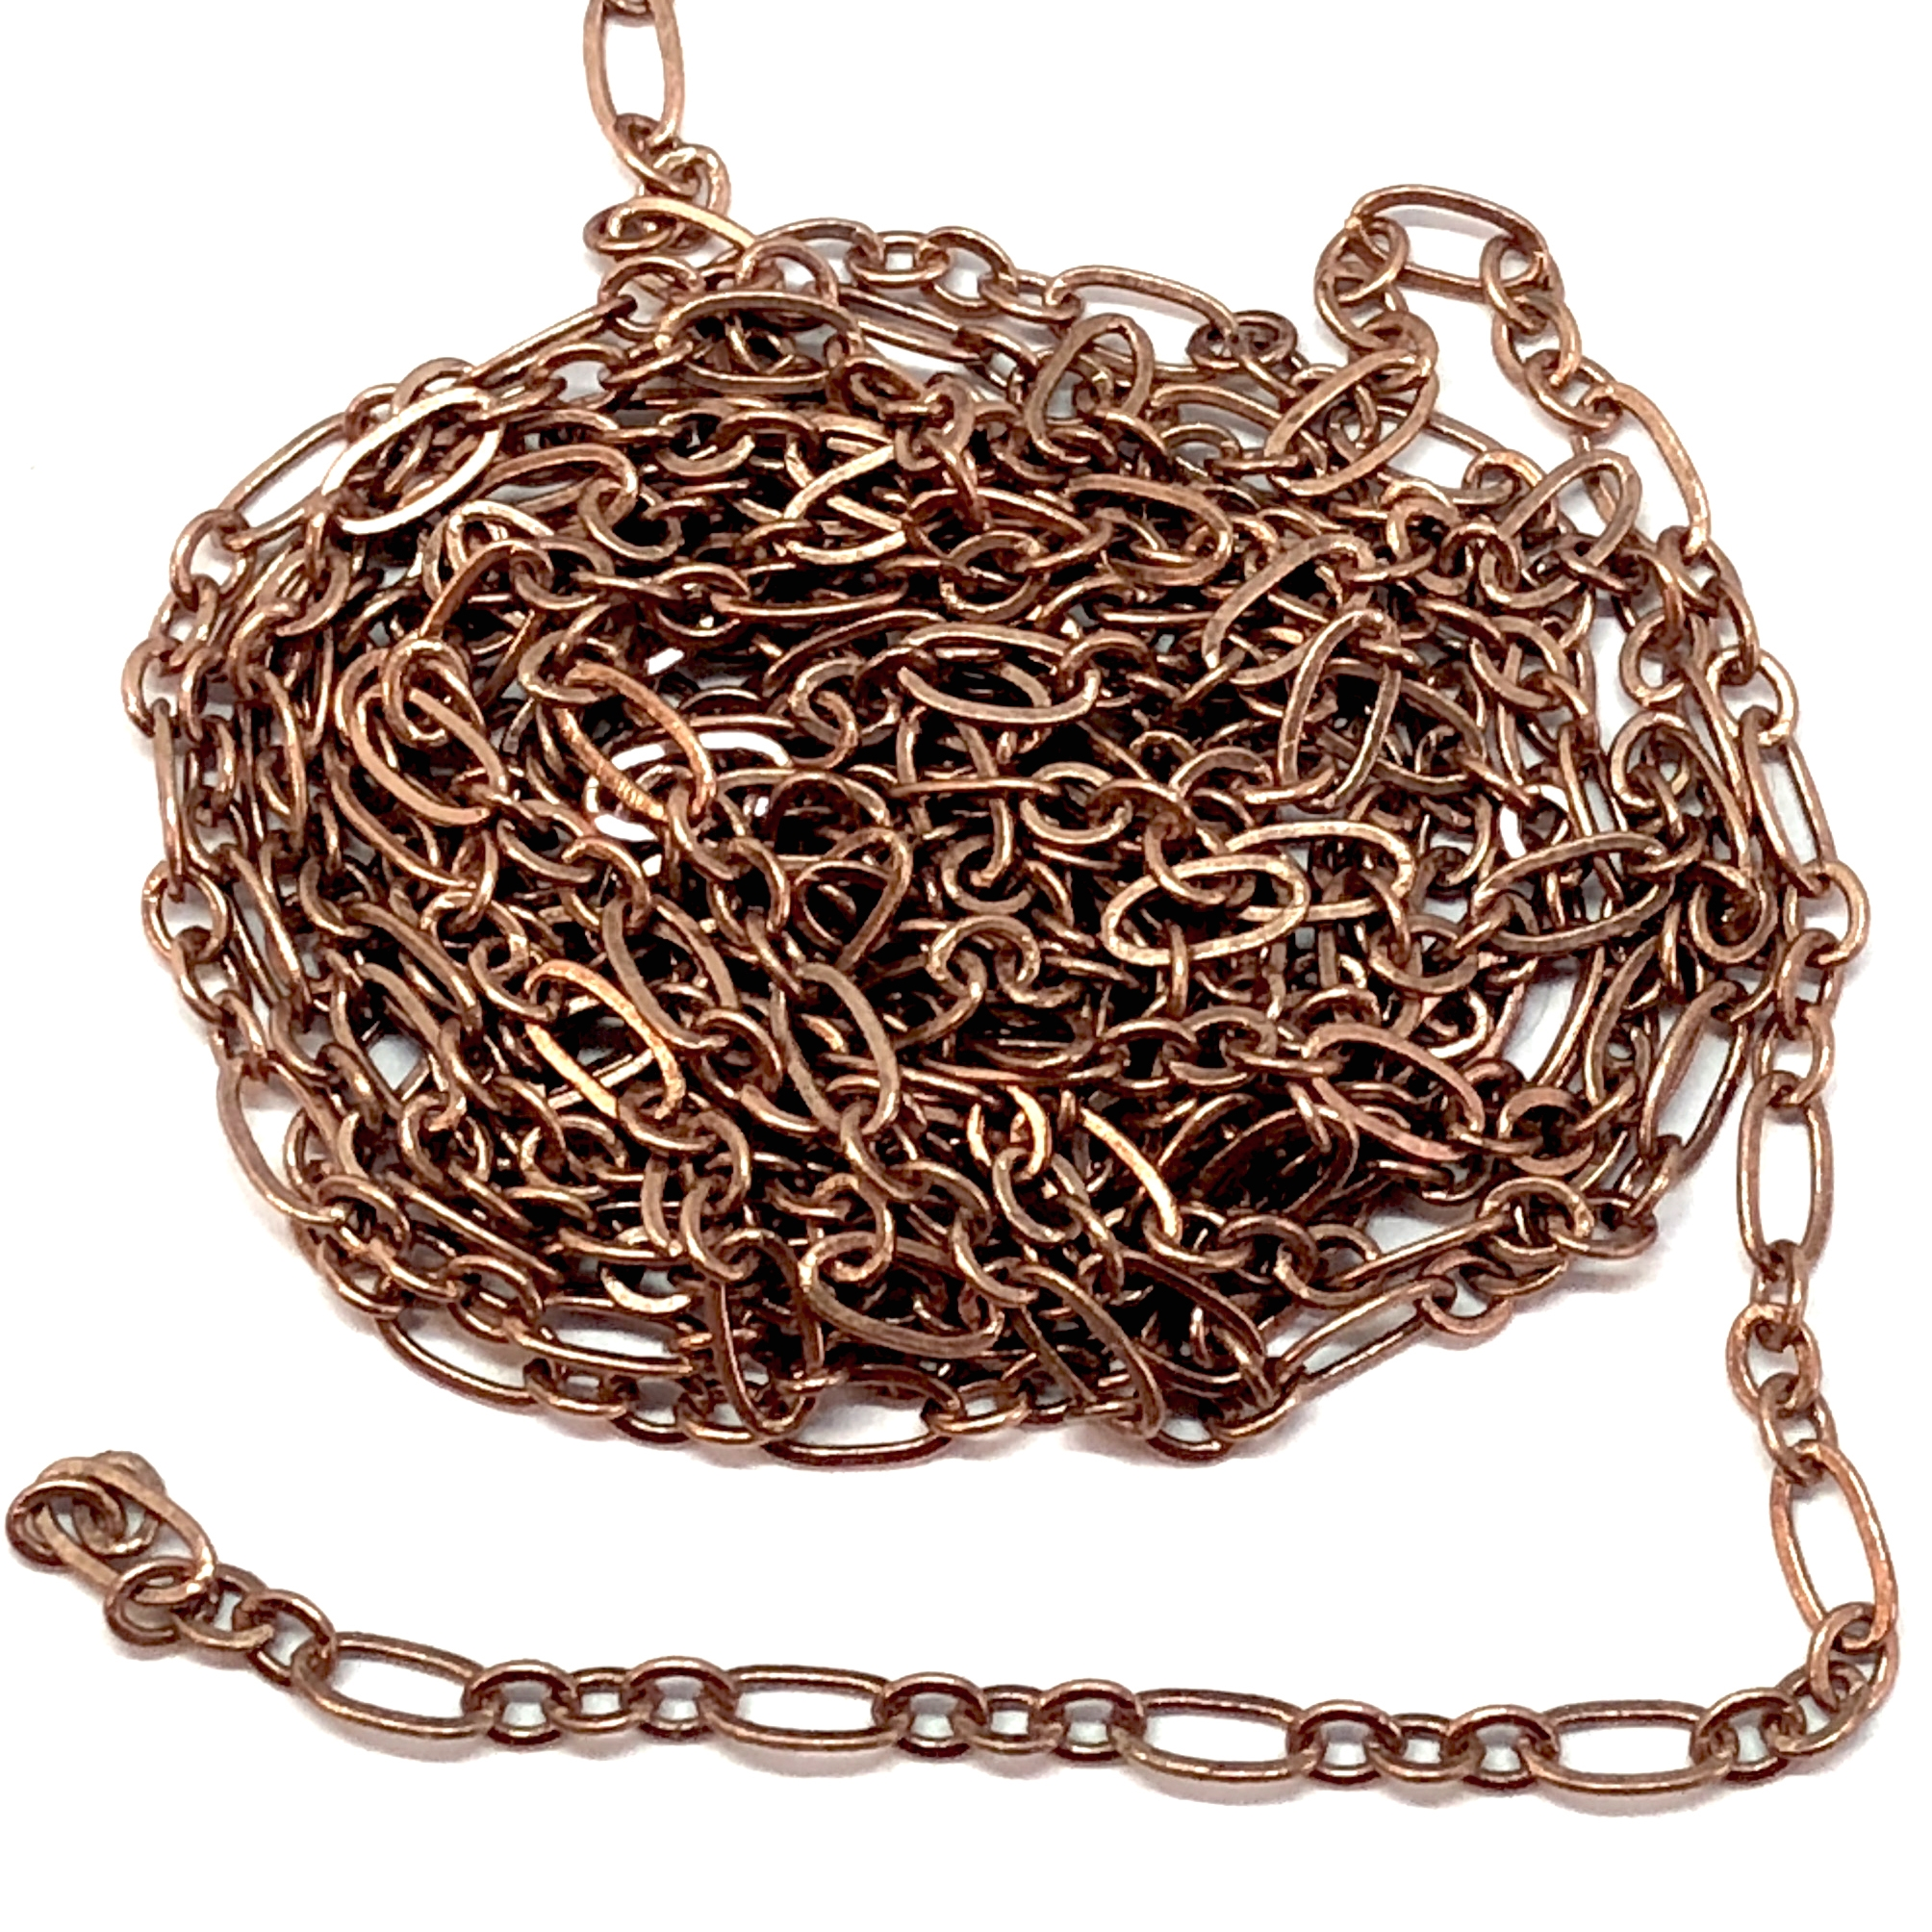 jewelry chain, oval link chain, antique copper, 05822, jewelry making supplies, vintage jewelry supplies, brass chain, antique copper chain, jewelry making, bsueboutiques